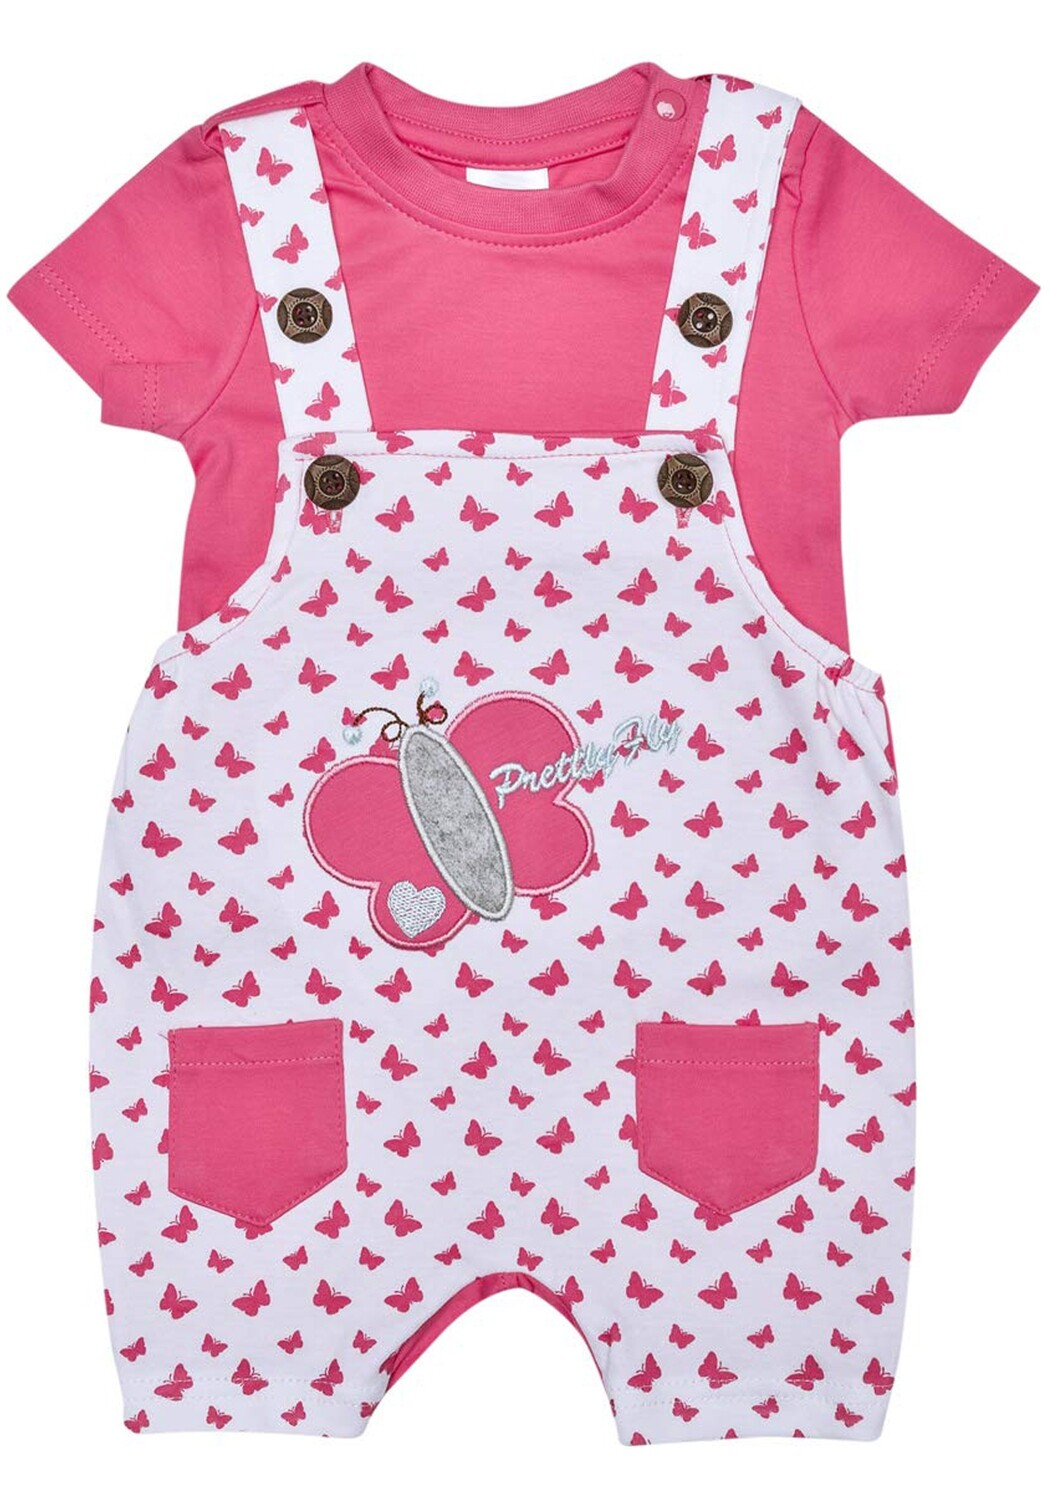 Tibby Fuchsia Butterfly Printed Dungaree with Round Neck Half Sleeve T-Shirt for Boys